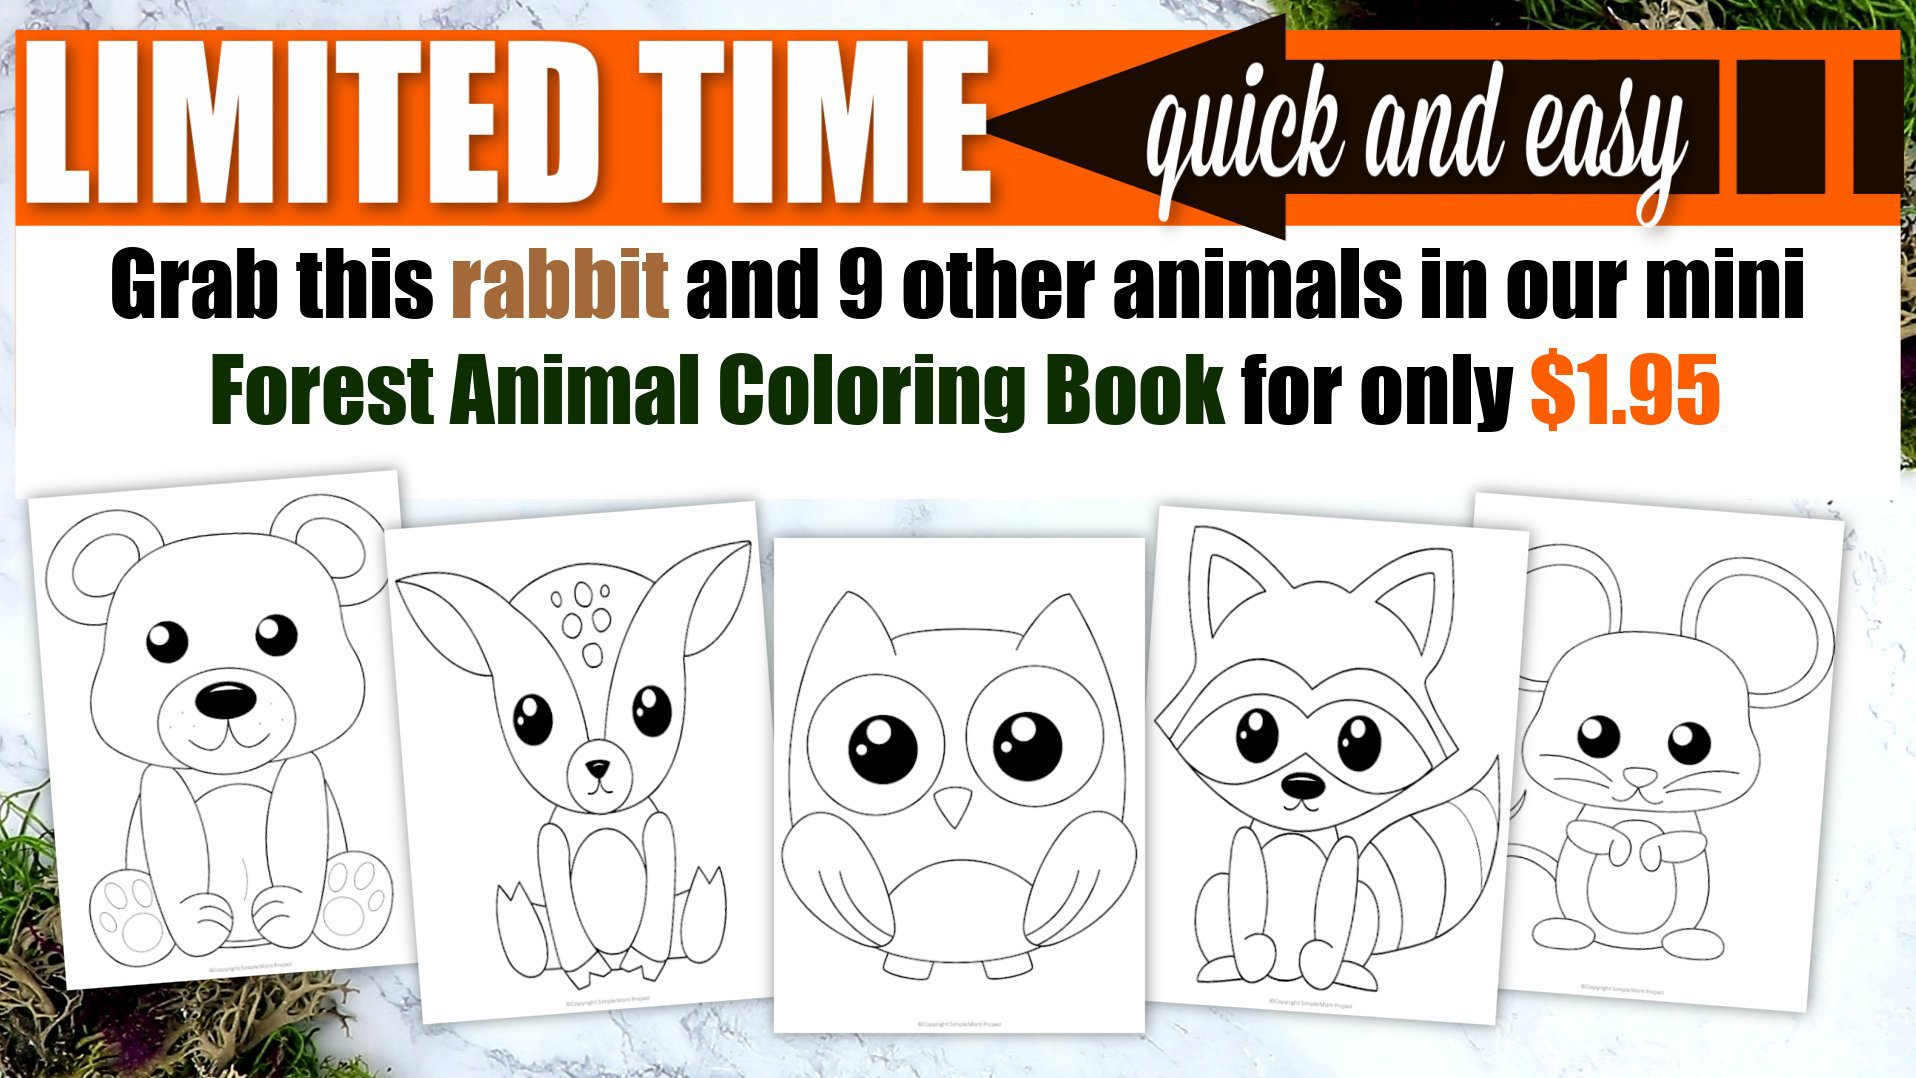 Printable Woodland Forest rabbit Coloring Page for Kids Preschoolers Toddlers and kindergartners